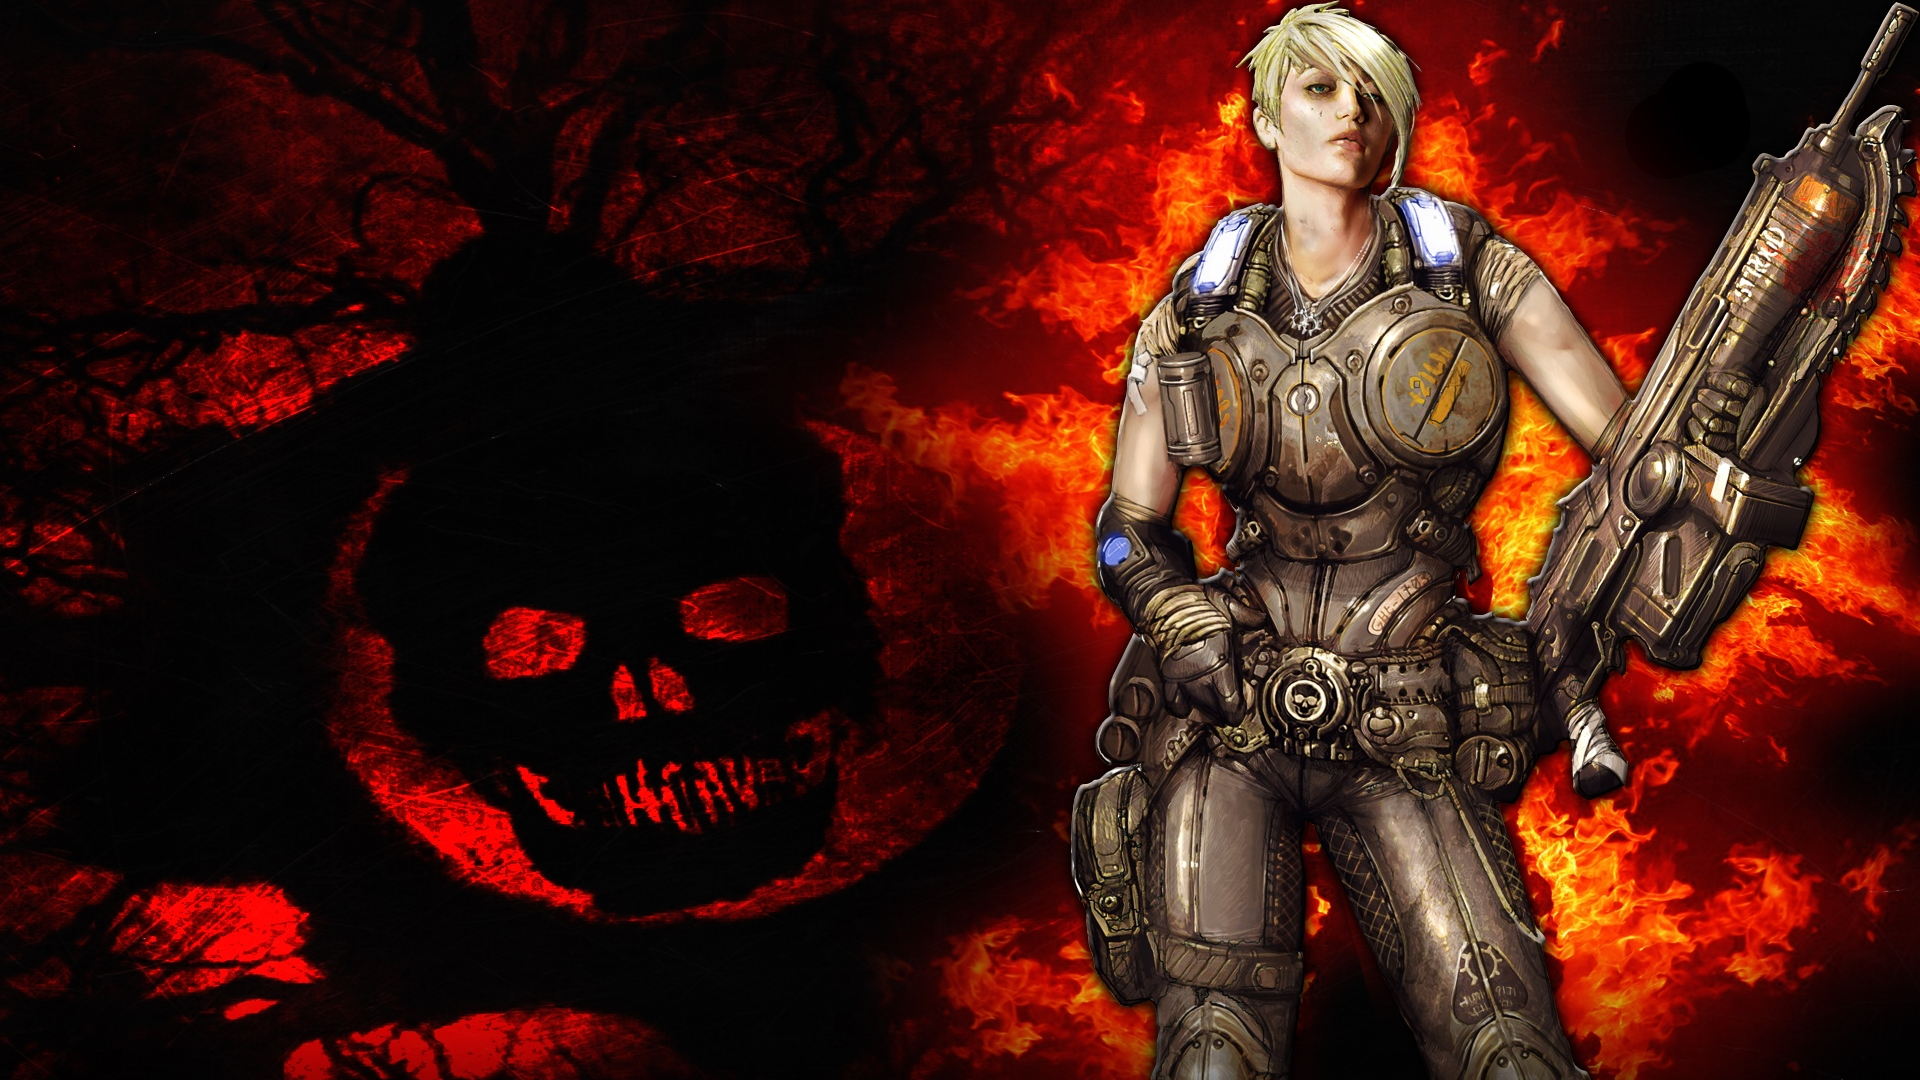 Gears Of Wars 3 Wallpaper: Gears Of War 3 Full HD Wallpaper And Background Image